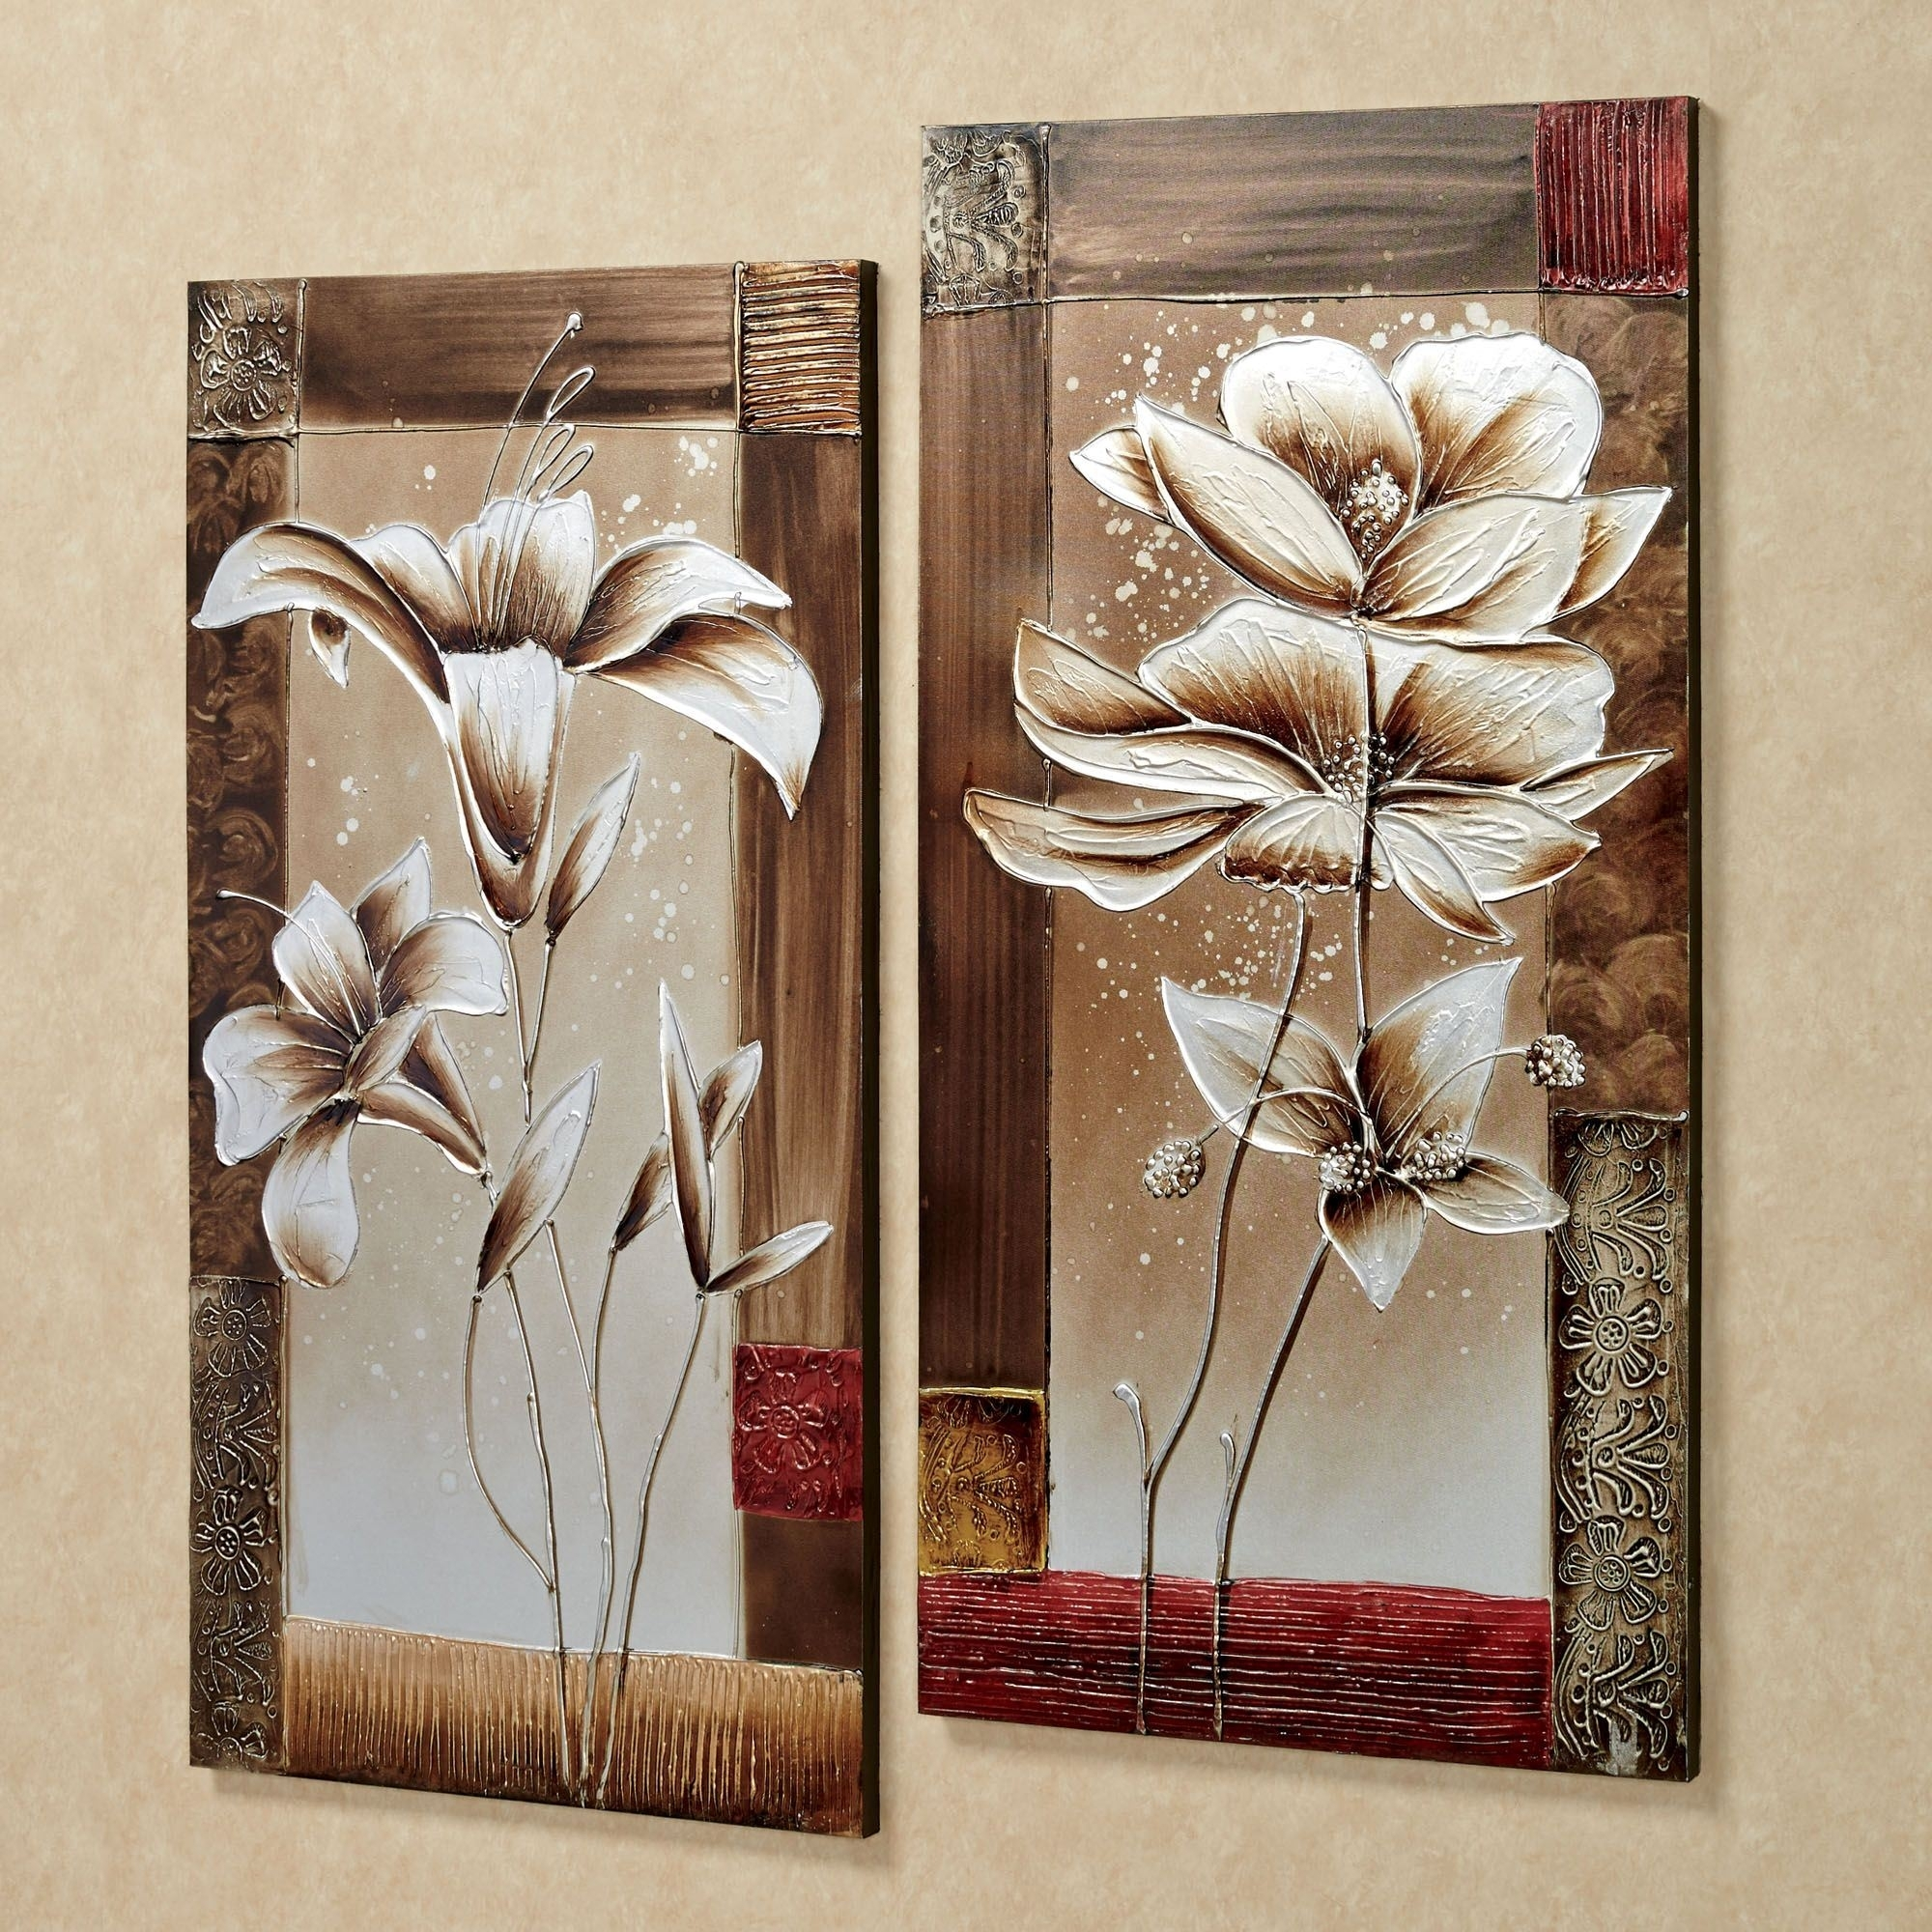 Petals Of Spring Floral Canvas Wall Art Set With Regard To Newest Wall Art Sets (View 6 of 15)